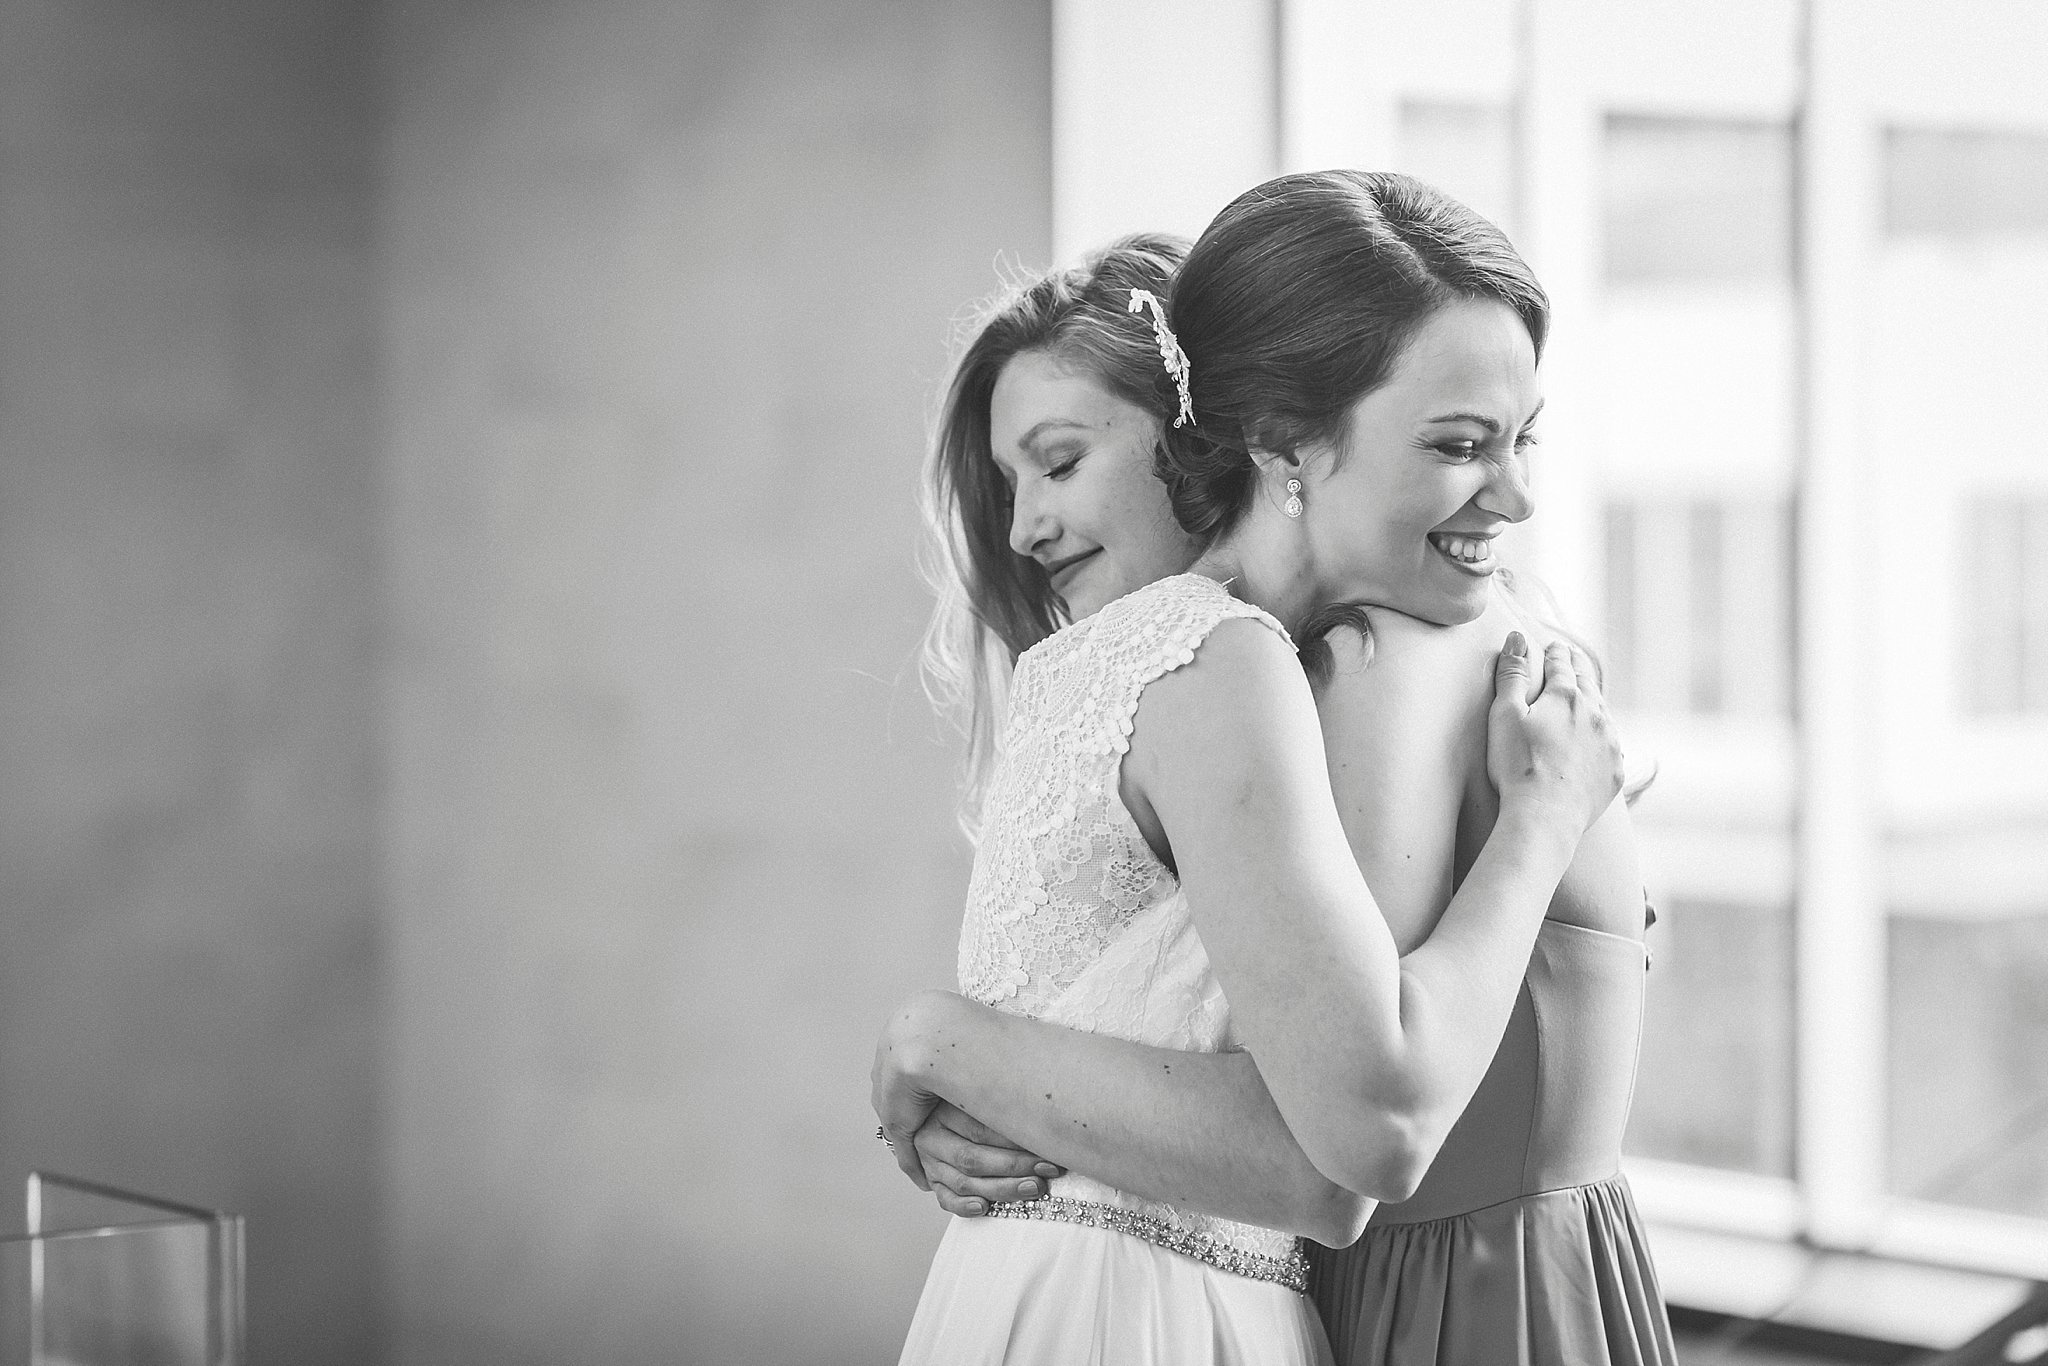 Bride and future sister-in-law hug during her St. John's, Newfoundland wedding.